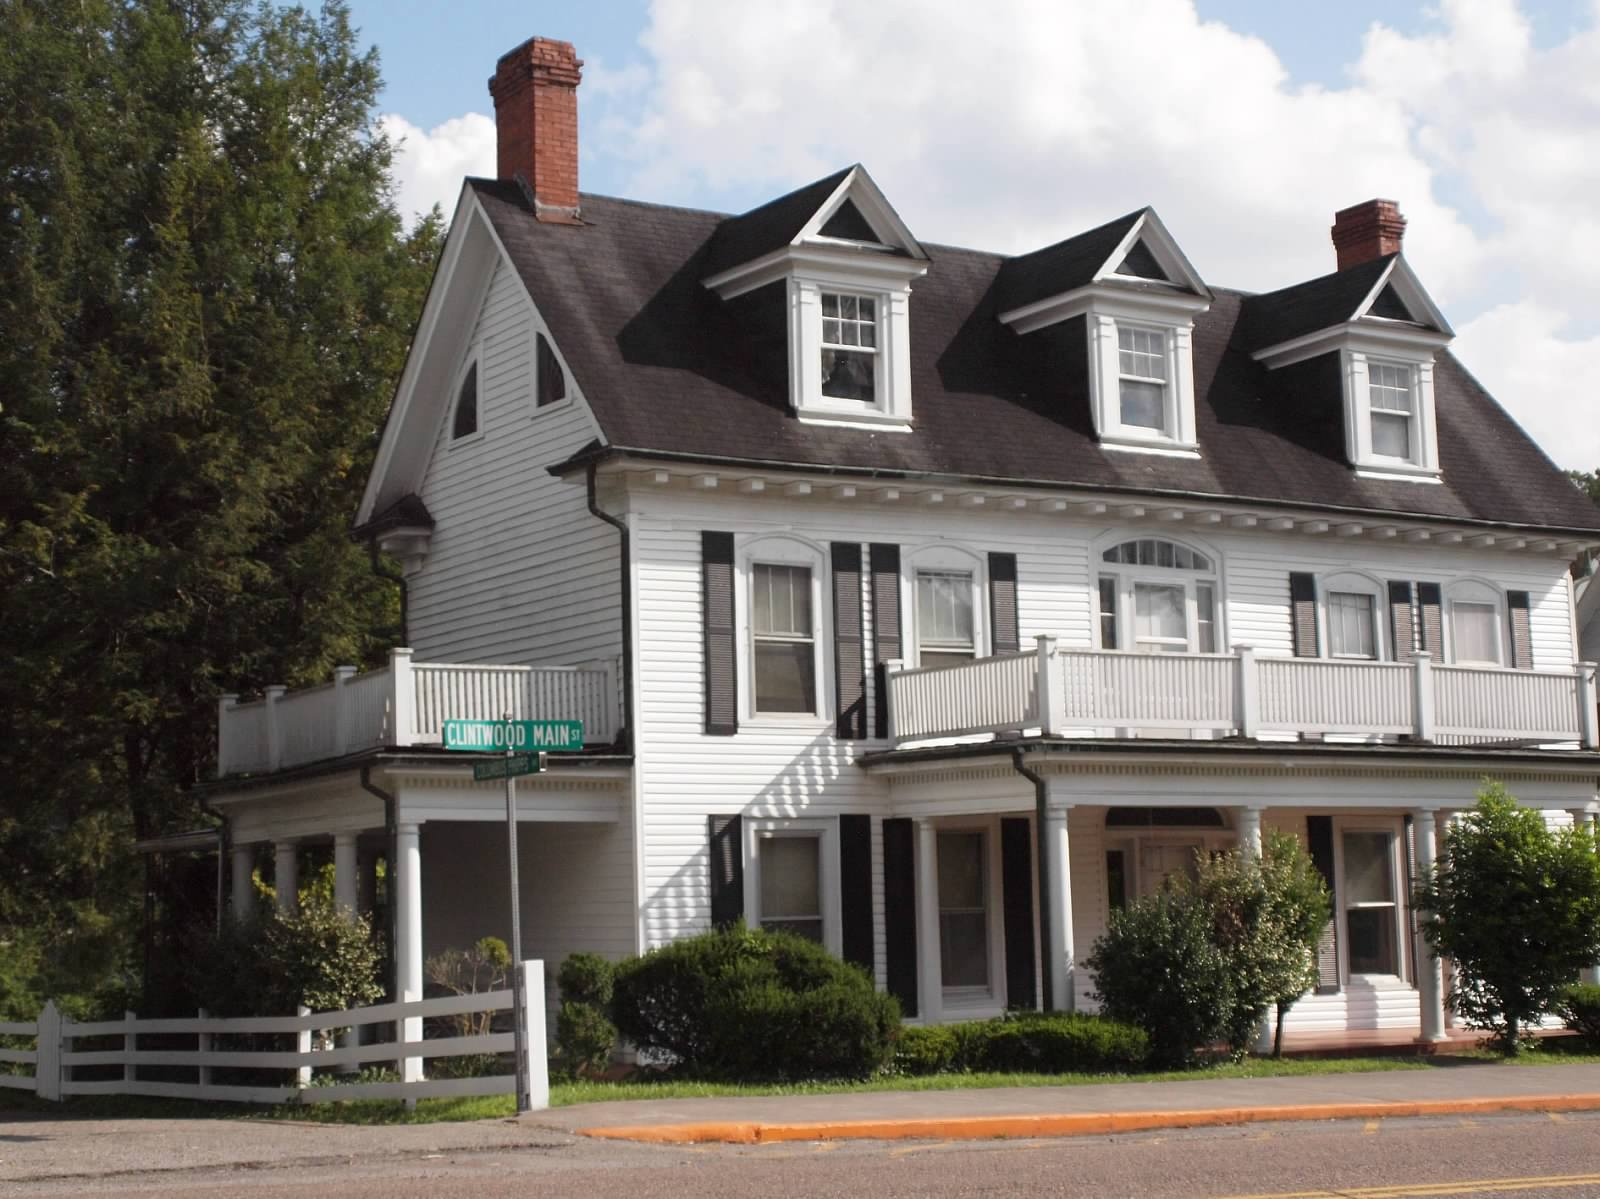 The Phipps House on Main Street in Clintwood